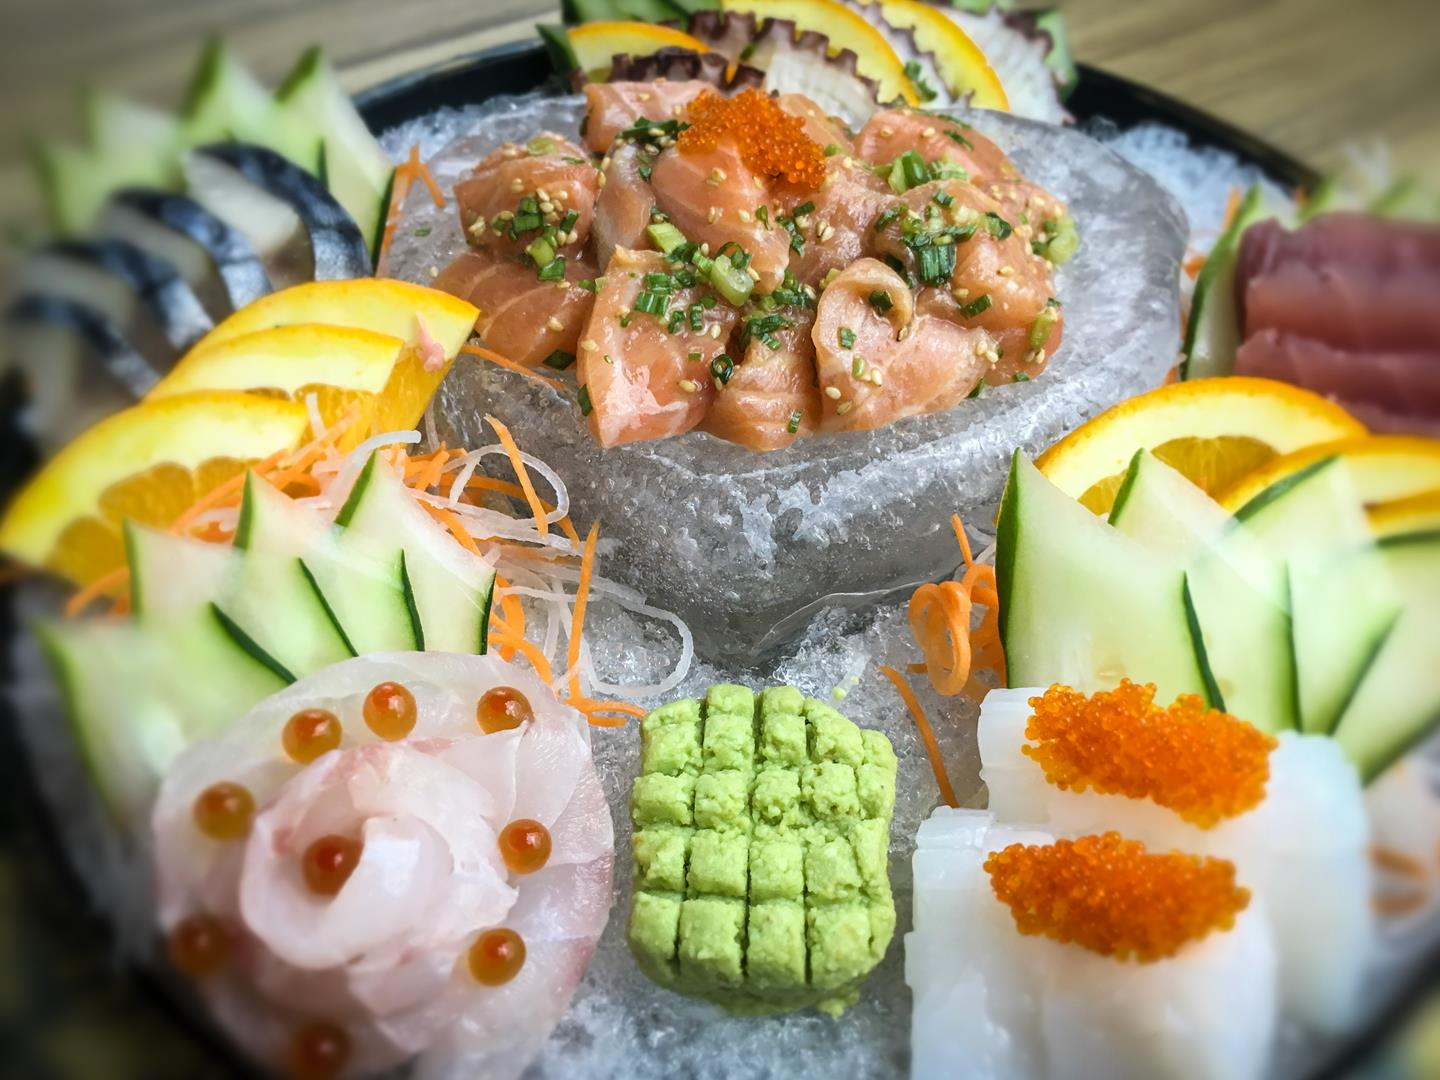 This ice-filled heart-shaped sashimi platter is filled with various morsels of succulent seafood.